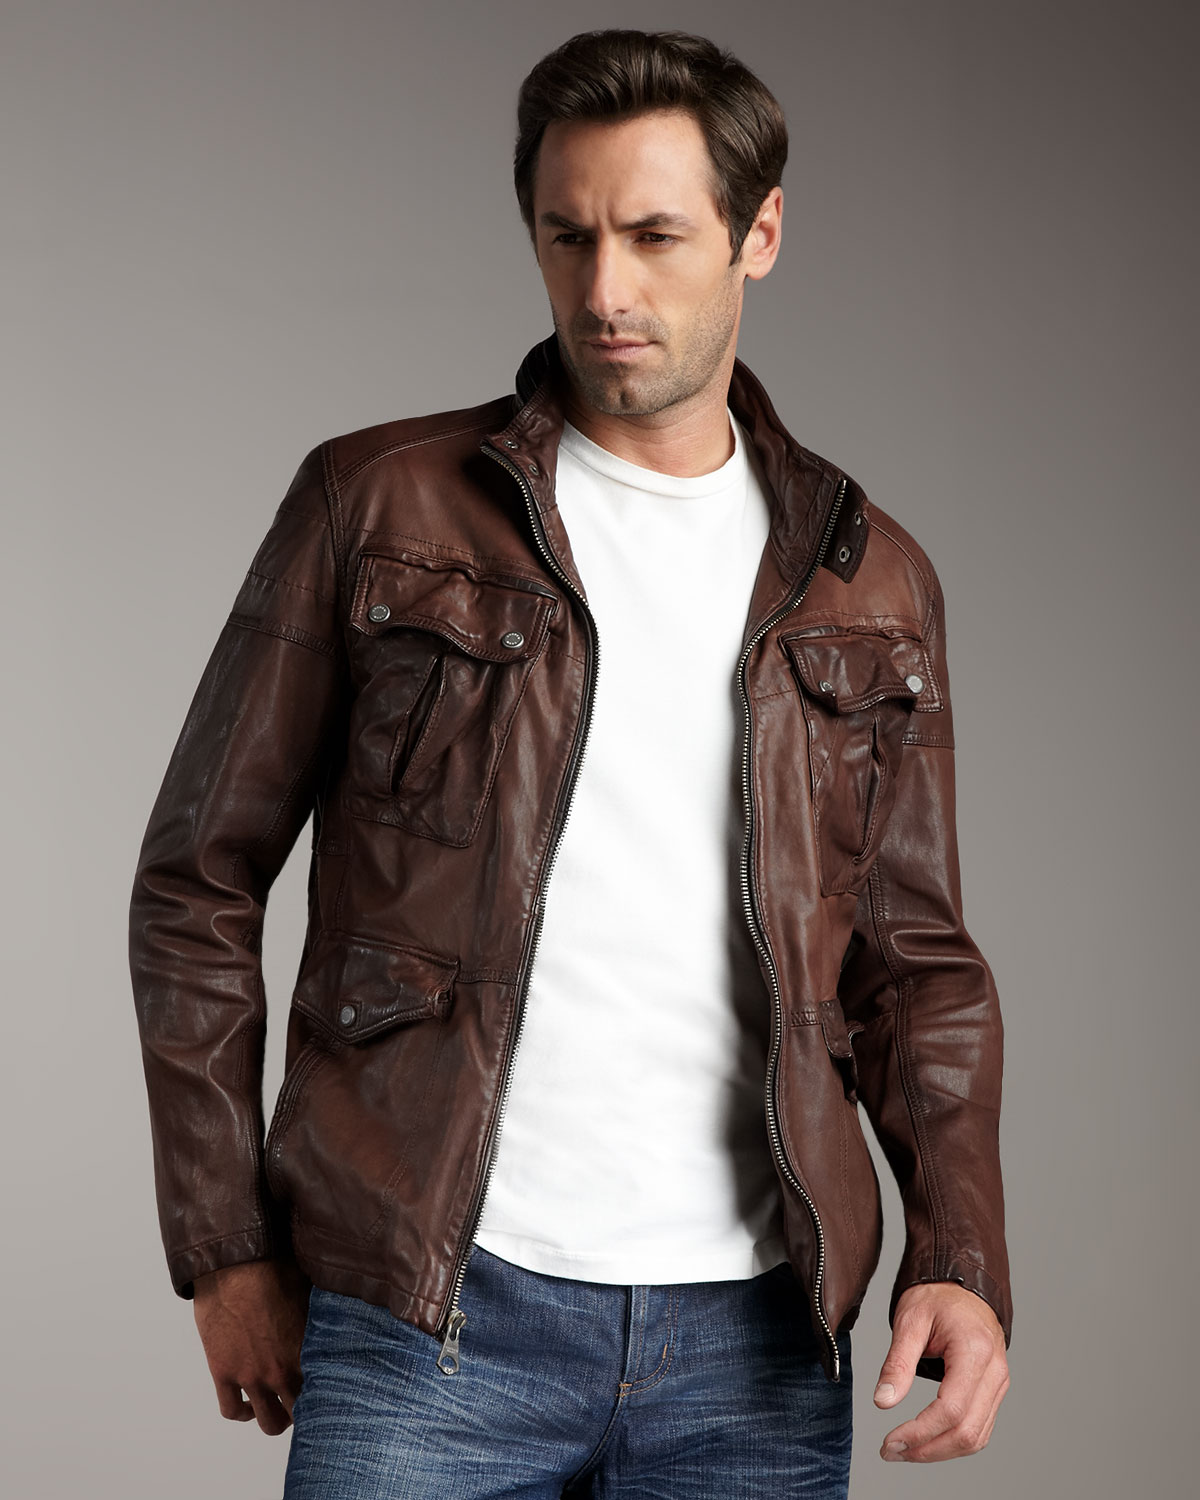 Andrew marc leather jacket men